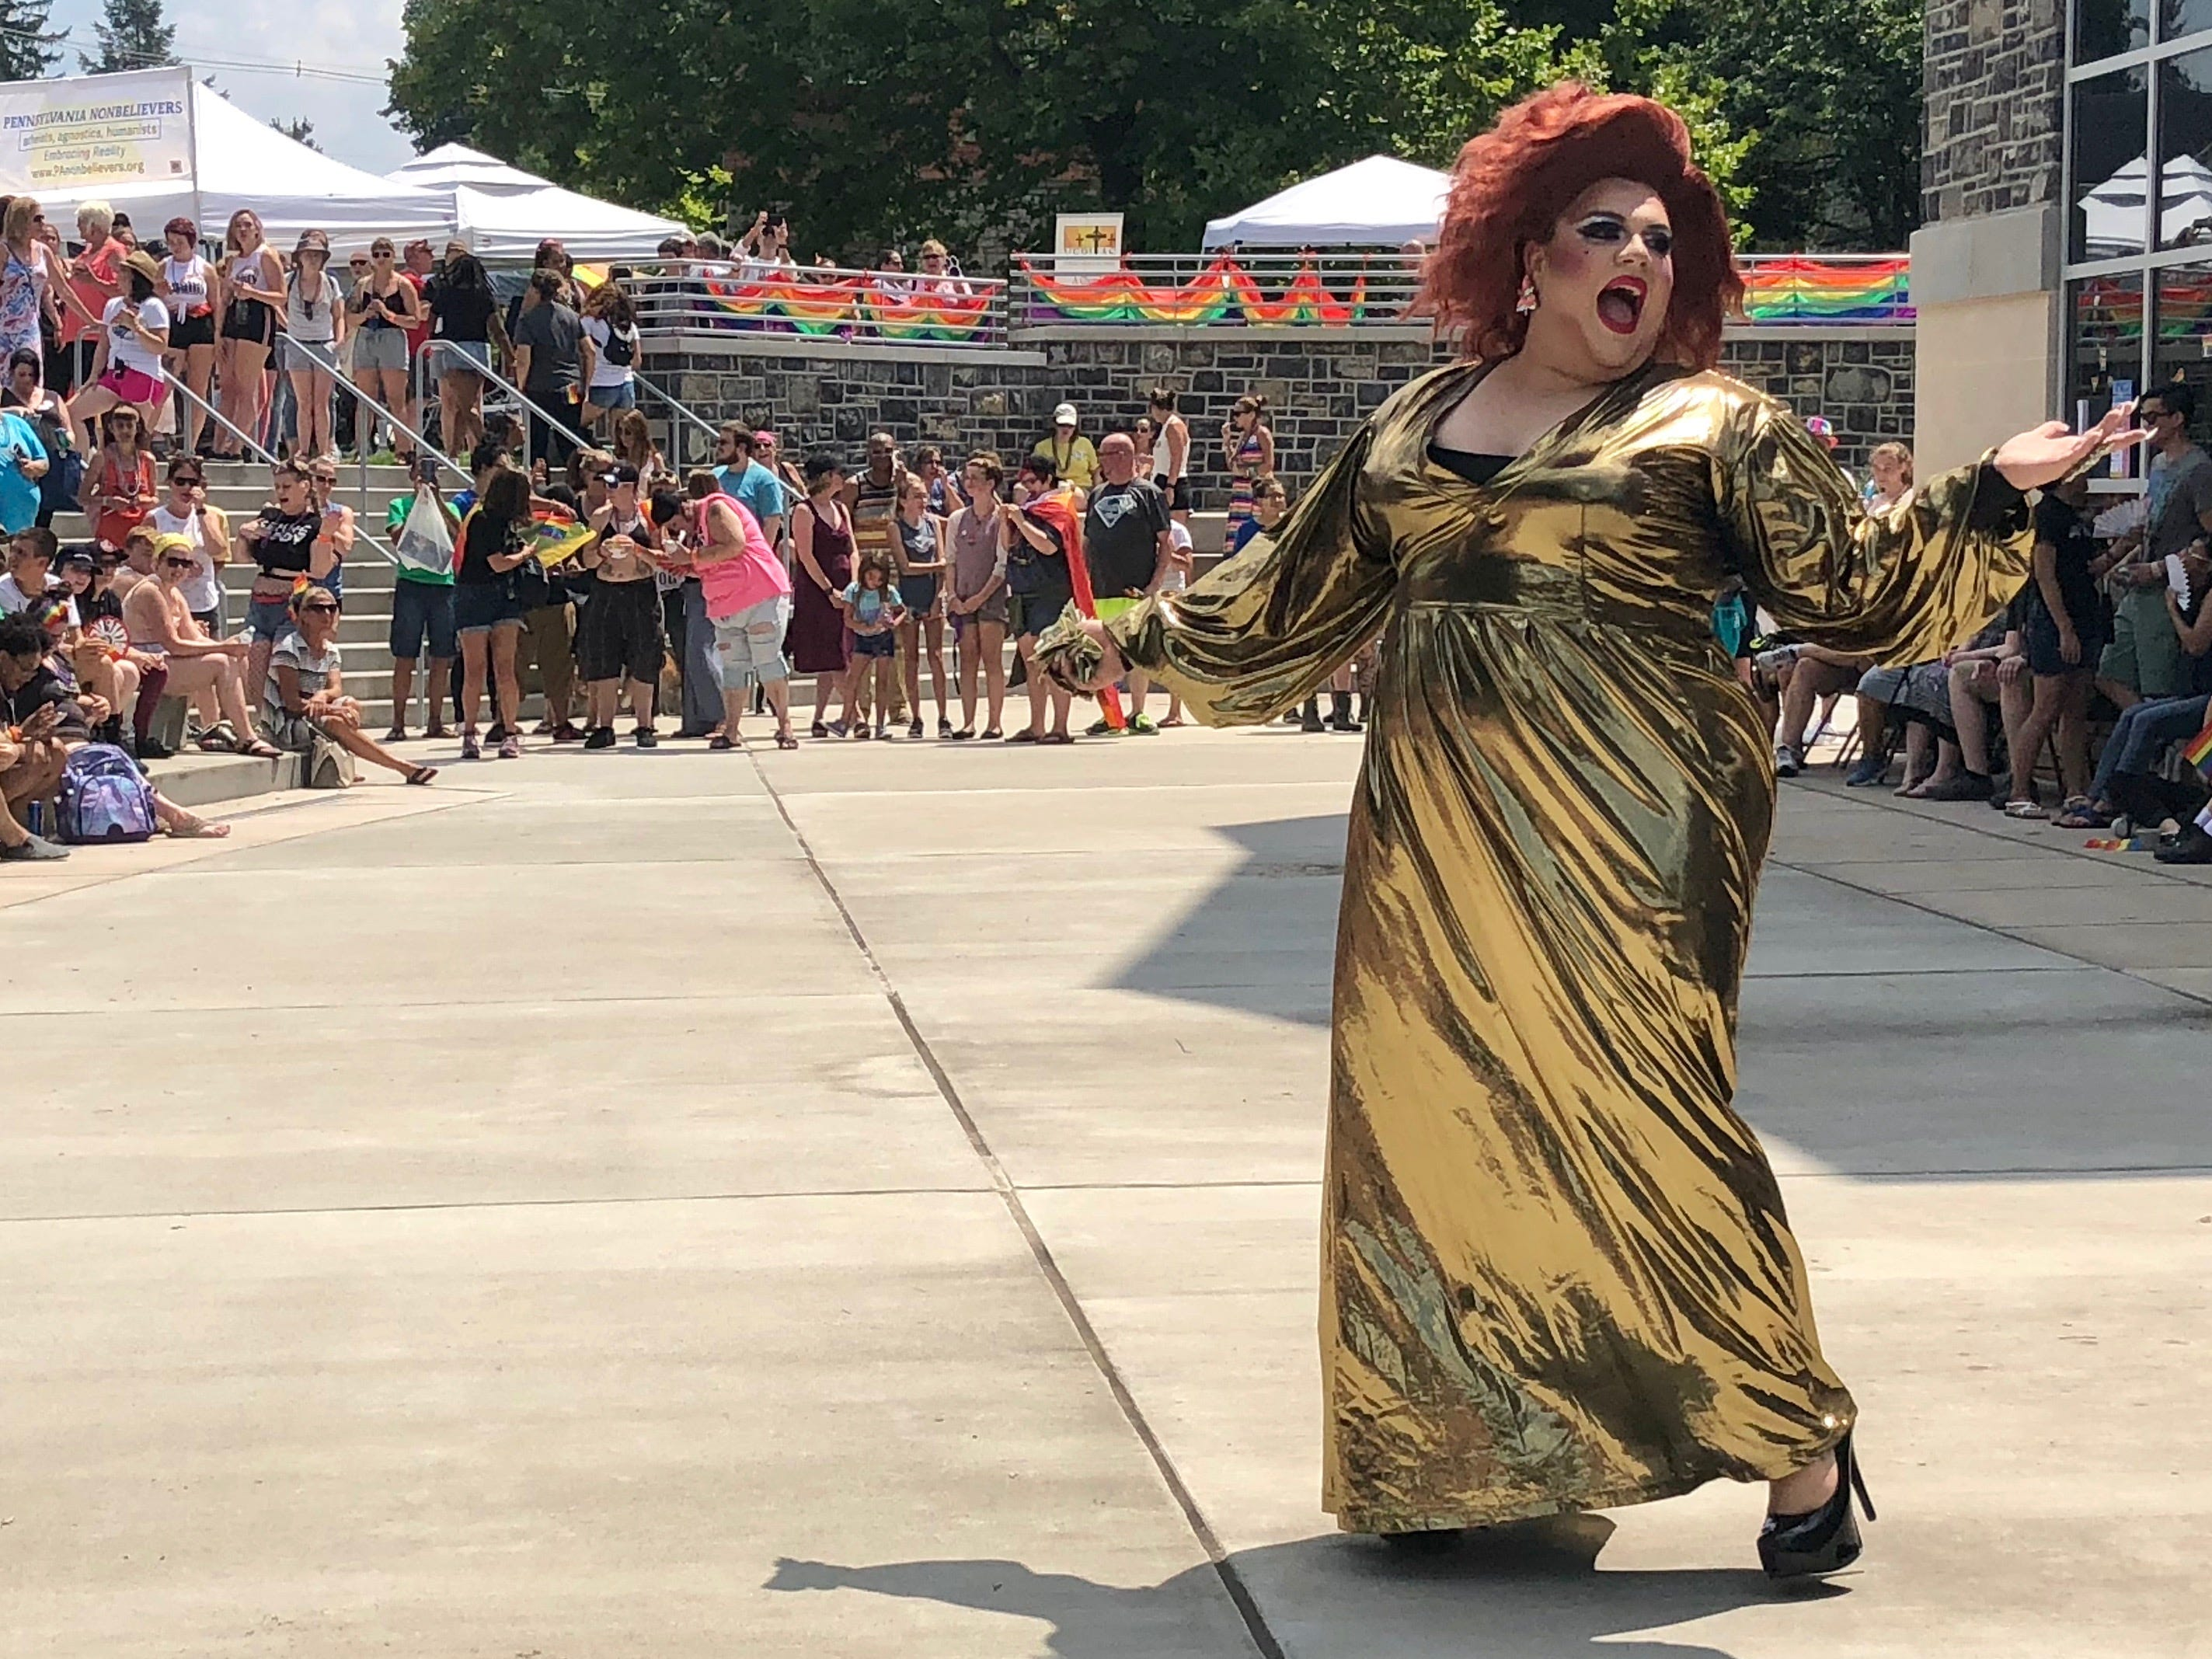 Lolli Cox, a Chambersburg draq queen, performs at a drag show during Franklin County's first Pride festival the afternoon of Sunday, Aug. 5, 2018 at Wilson College in Chambersburg.